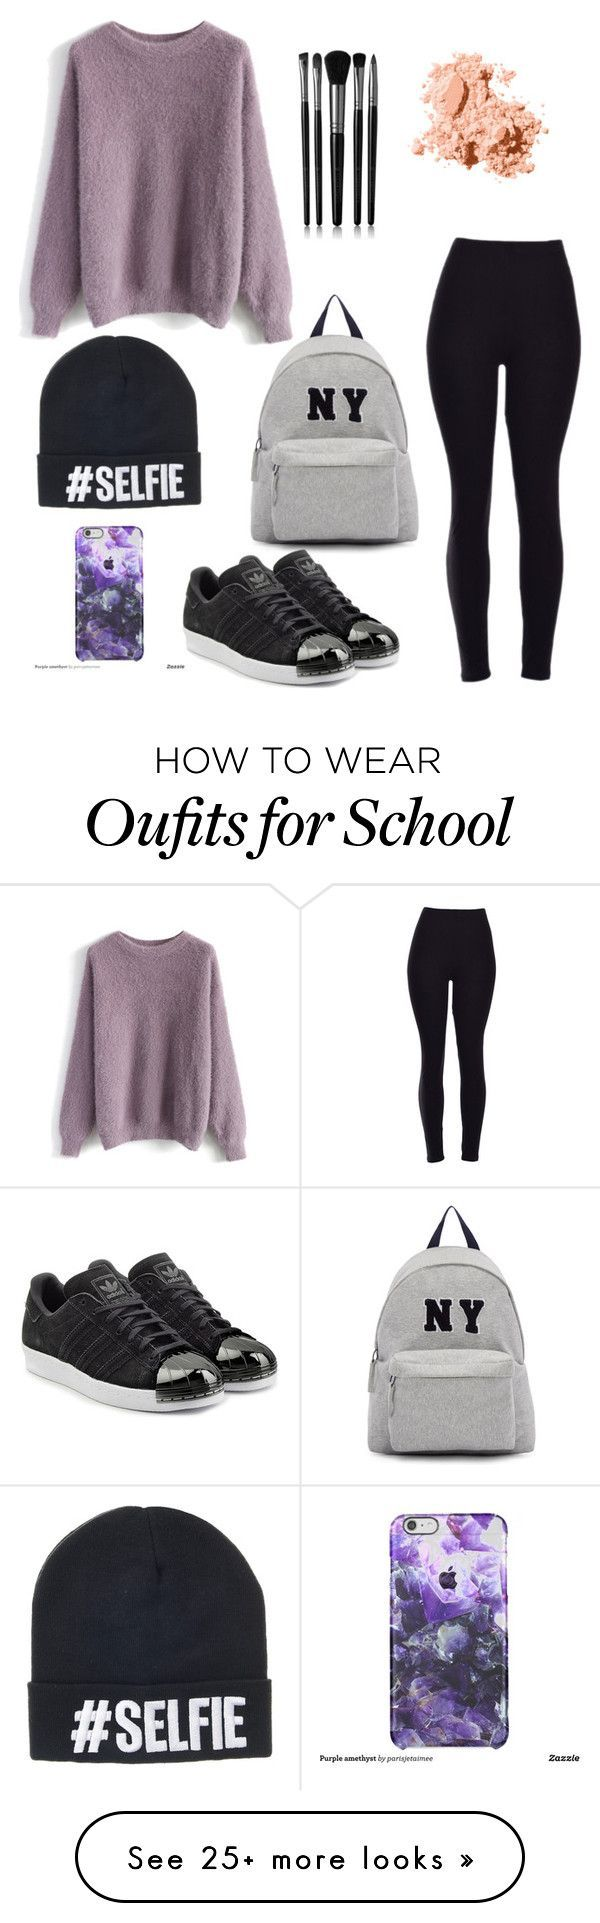 """Monday school outfit"" by jordangirl2313 on Polyvore featuring moda, Joshua's, Chicwish, adidas Originals, Illamasqua, Bobbi Brown Cosmetics, women's clothing, women, female i woman"